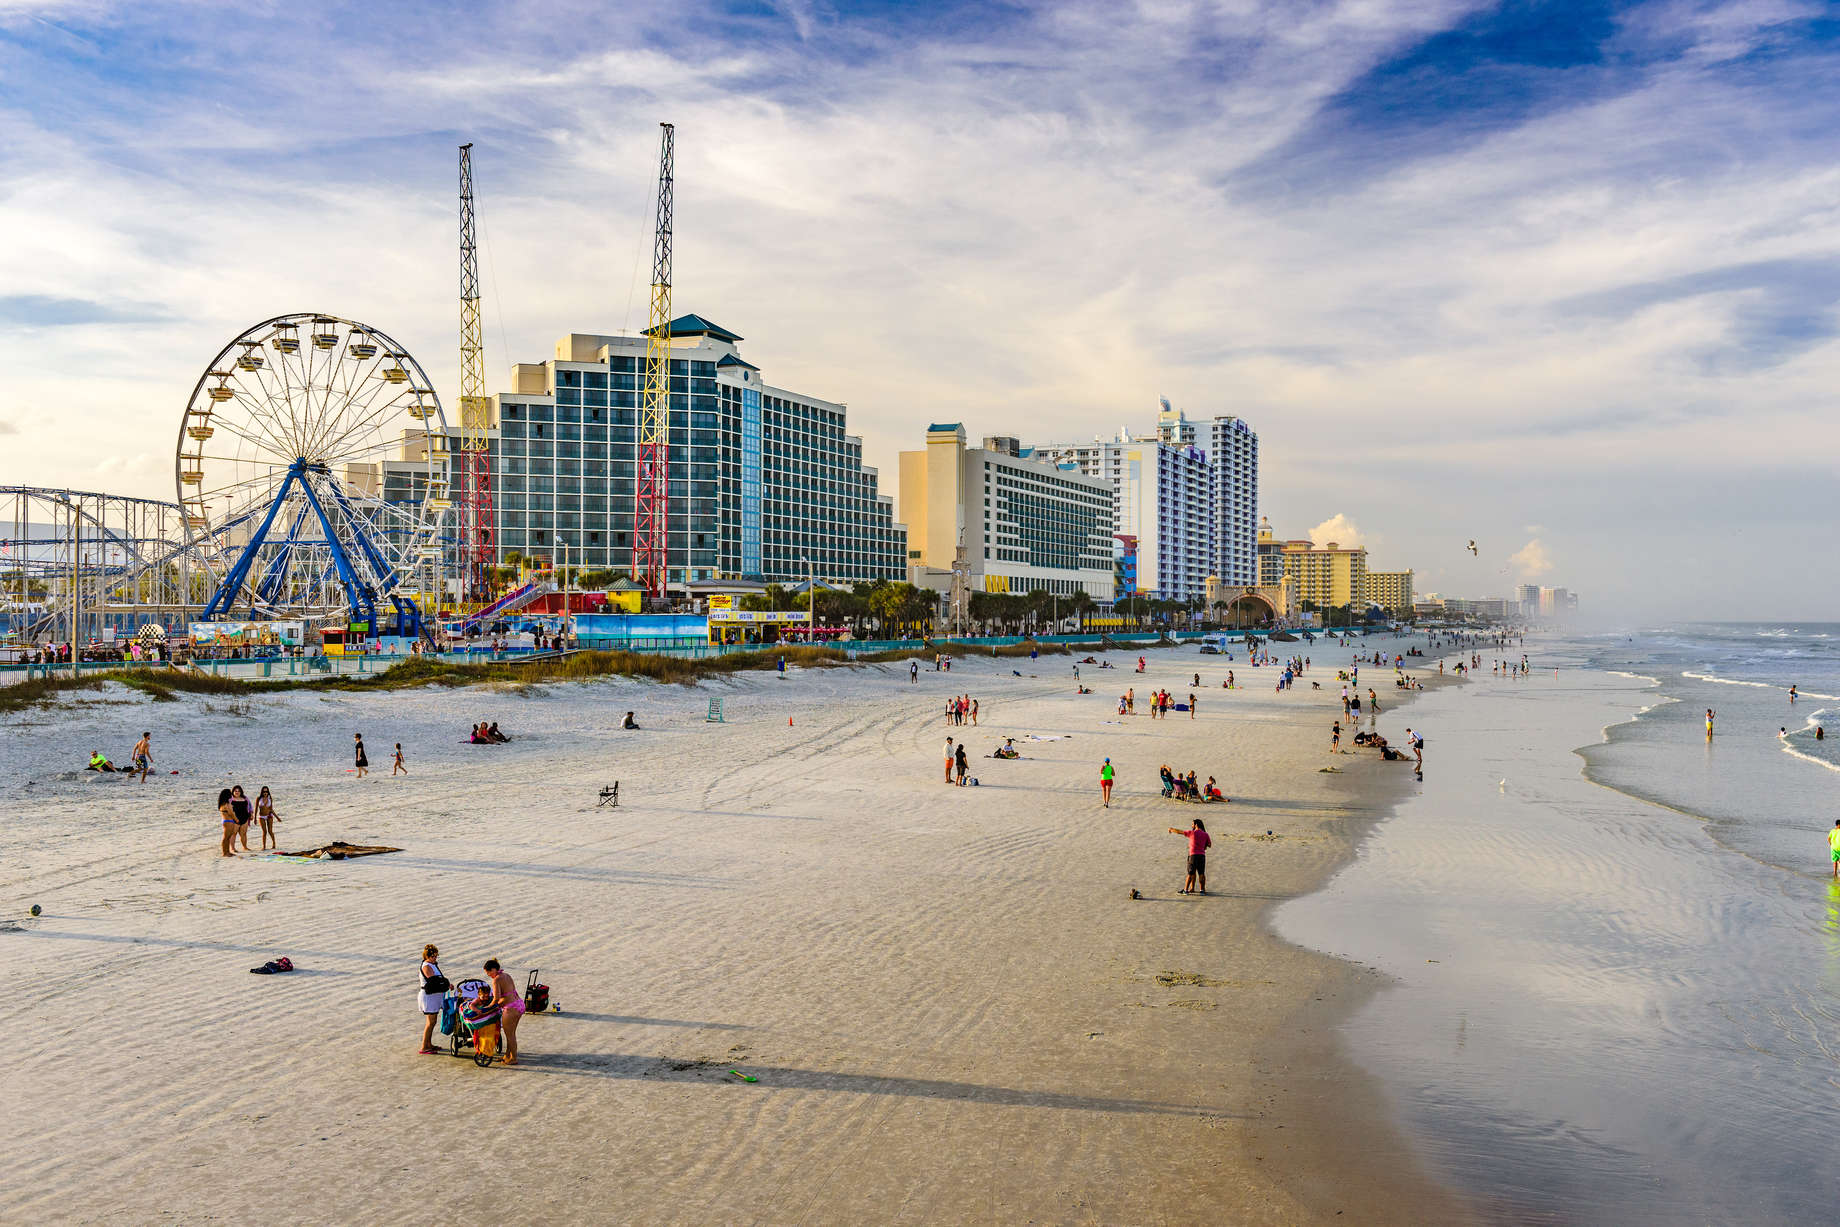 """Trip to the land of beaches """"Miami"""" by Southwest Airlines"""